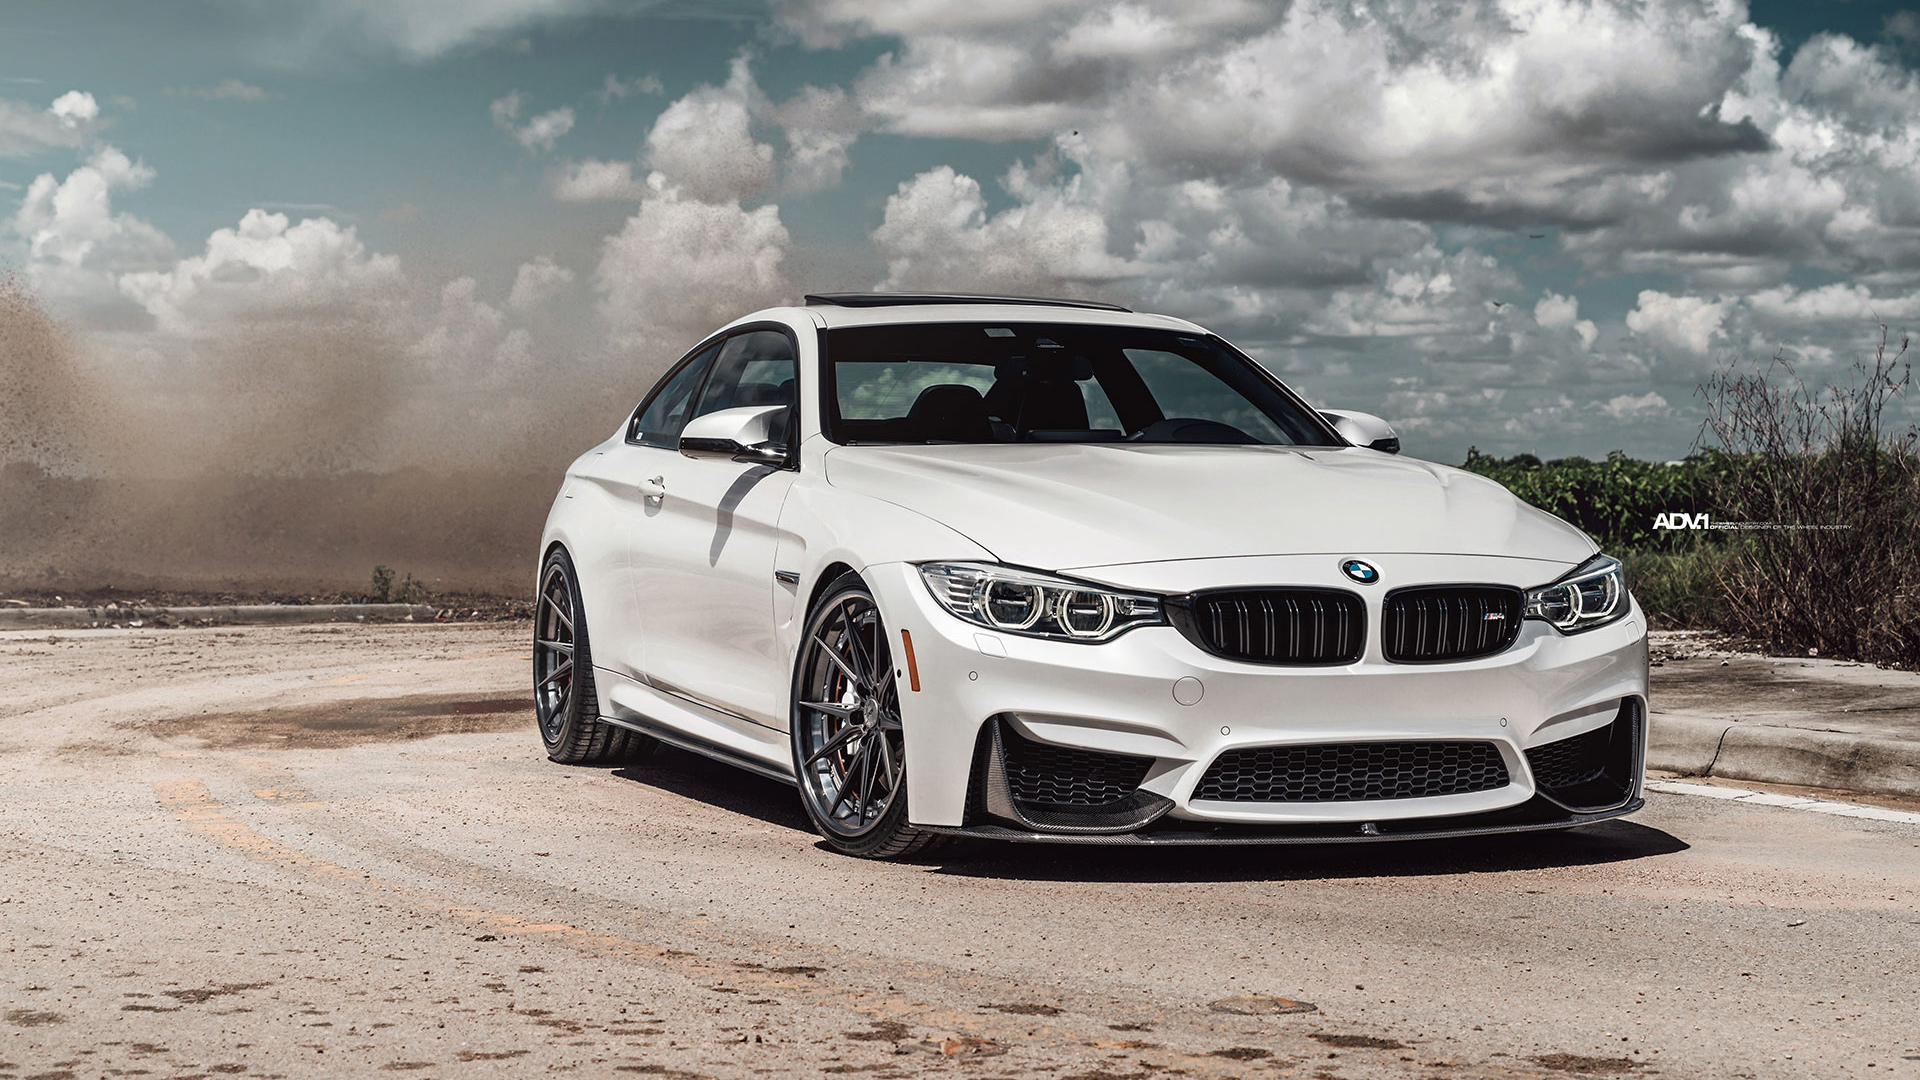 Alpine White Bmw F82 M4 Wallpaper Hd Car Wallpapers Id 9486